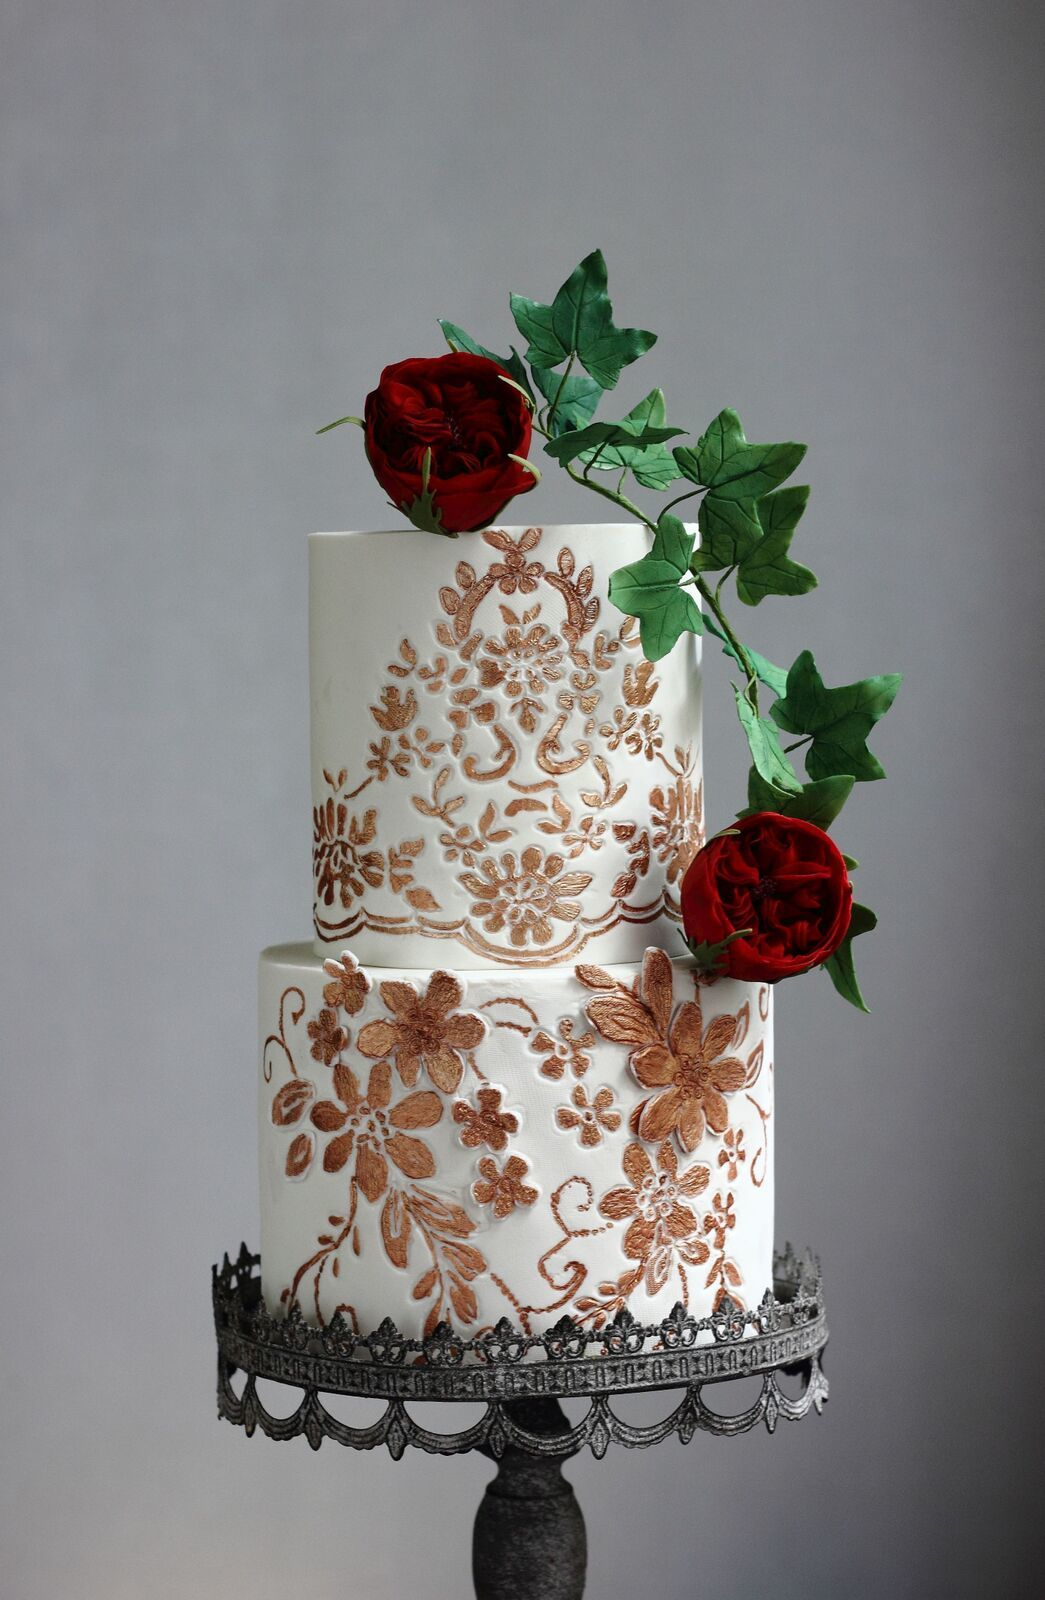 White with gold victorian wedding cake with red sugar roses